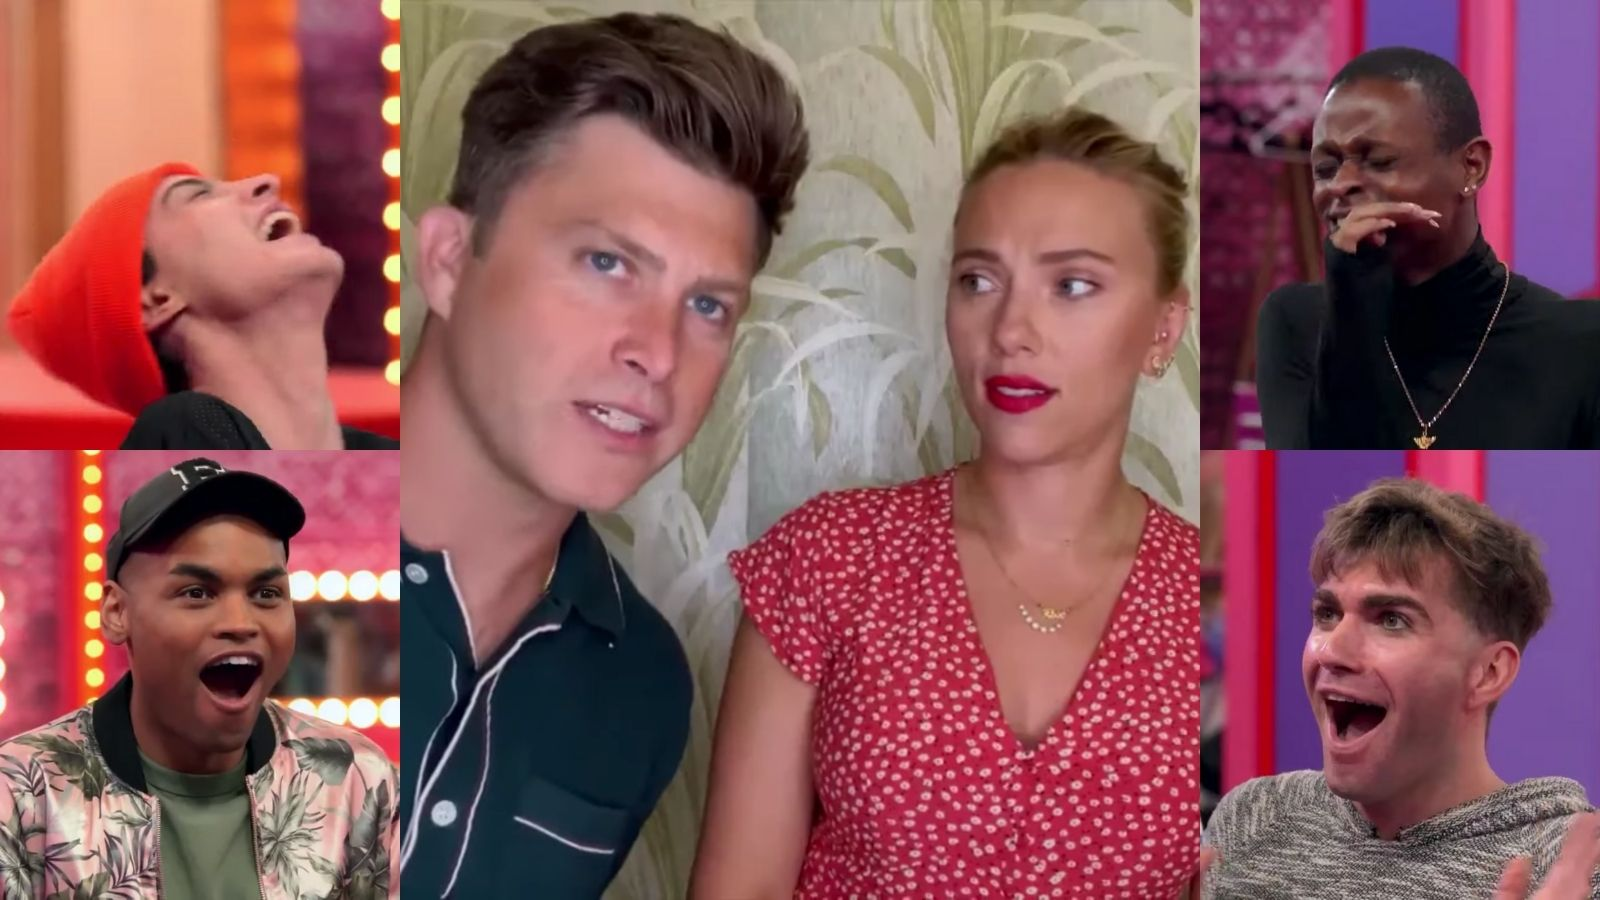 Colin Jost jumping into frame during Scarlett Johansson's appearance of 'Ru Paul's Drag Race,' with Gottmik, Olivia Lux, Symone and Rosé laughing at his cameo